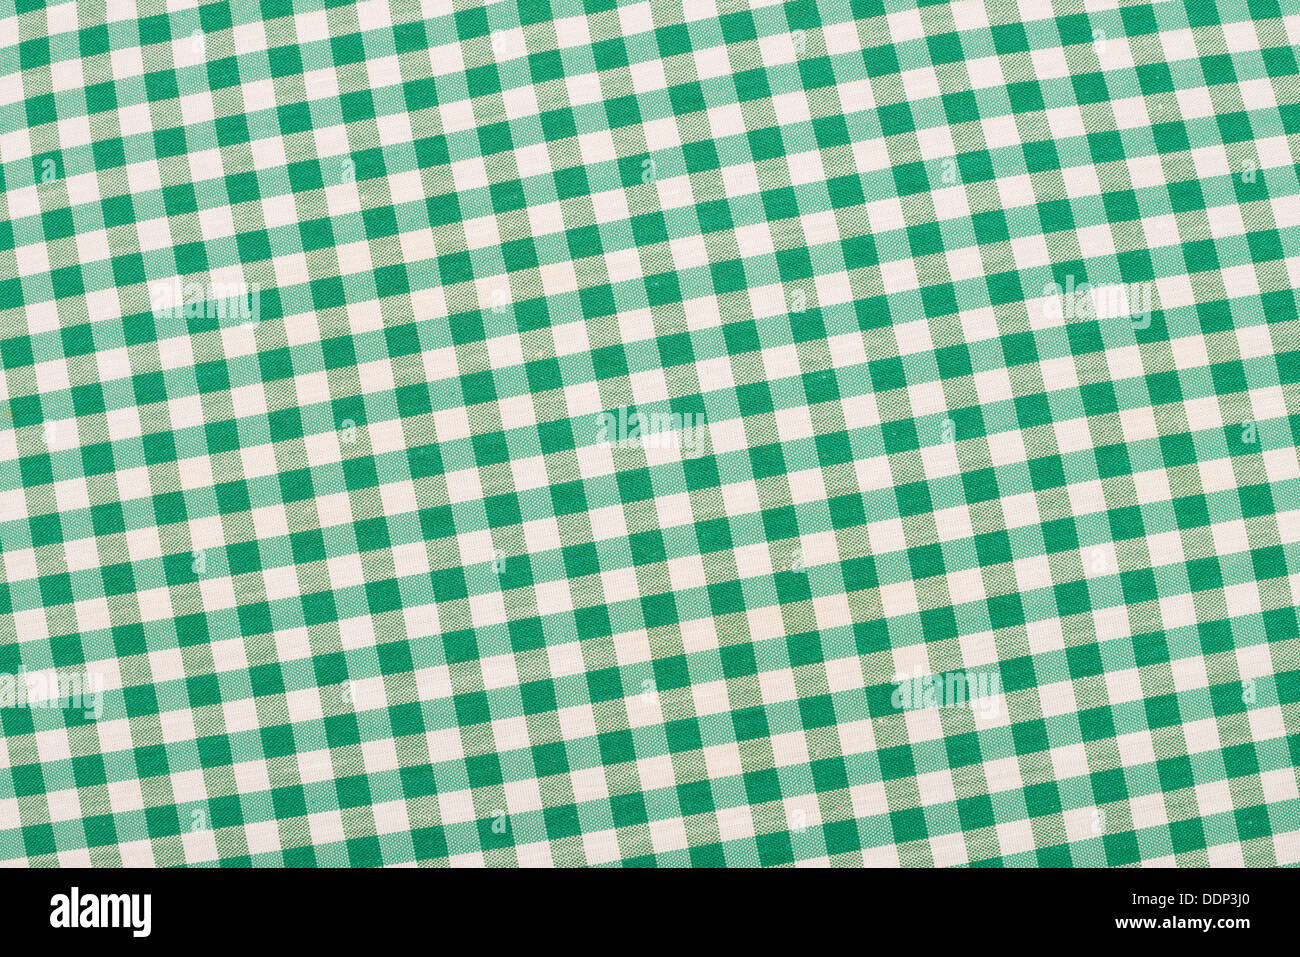 Green and white checkered fabric, traditional picnic tablecloth Stock Photo  - Alamy